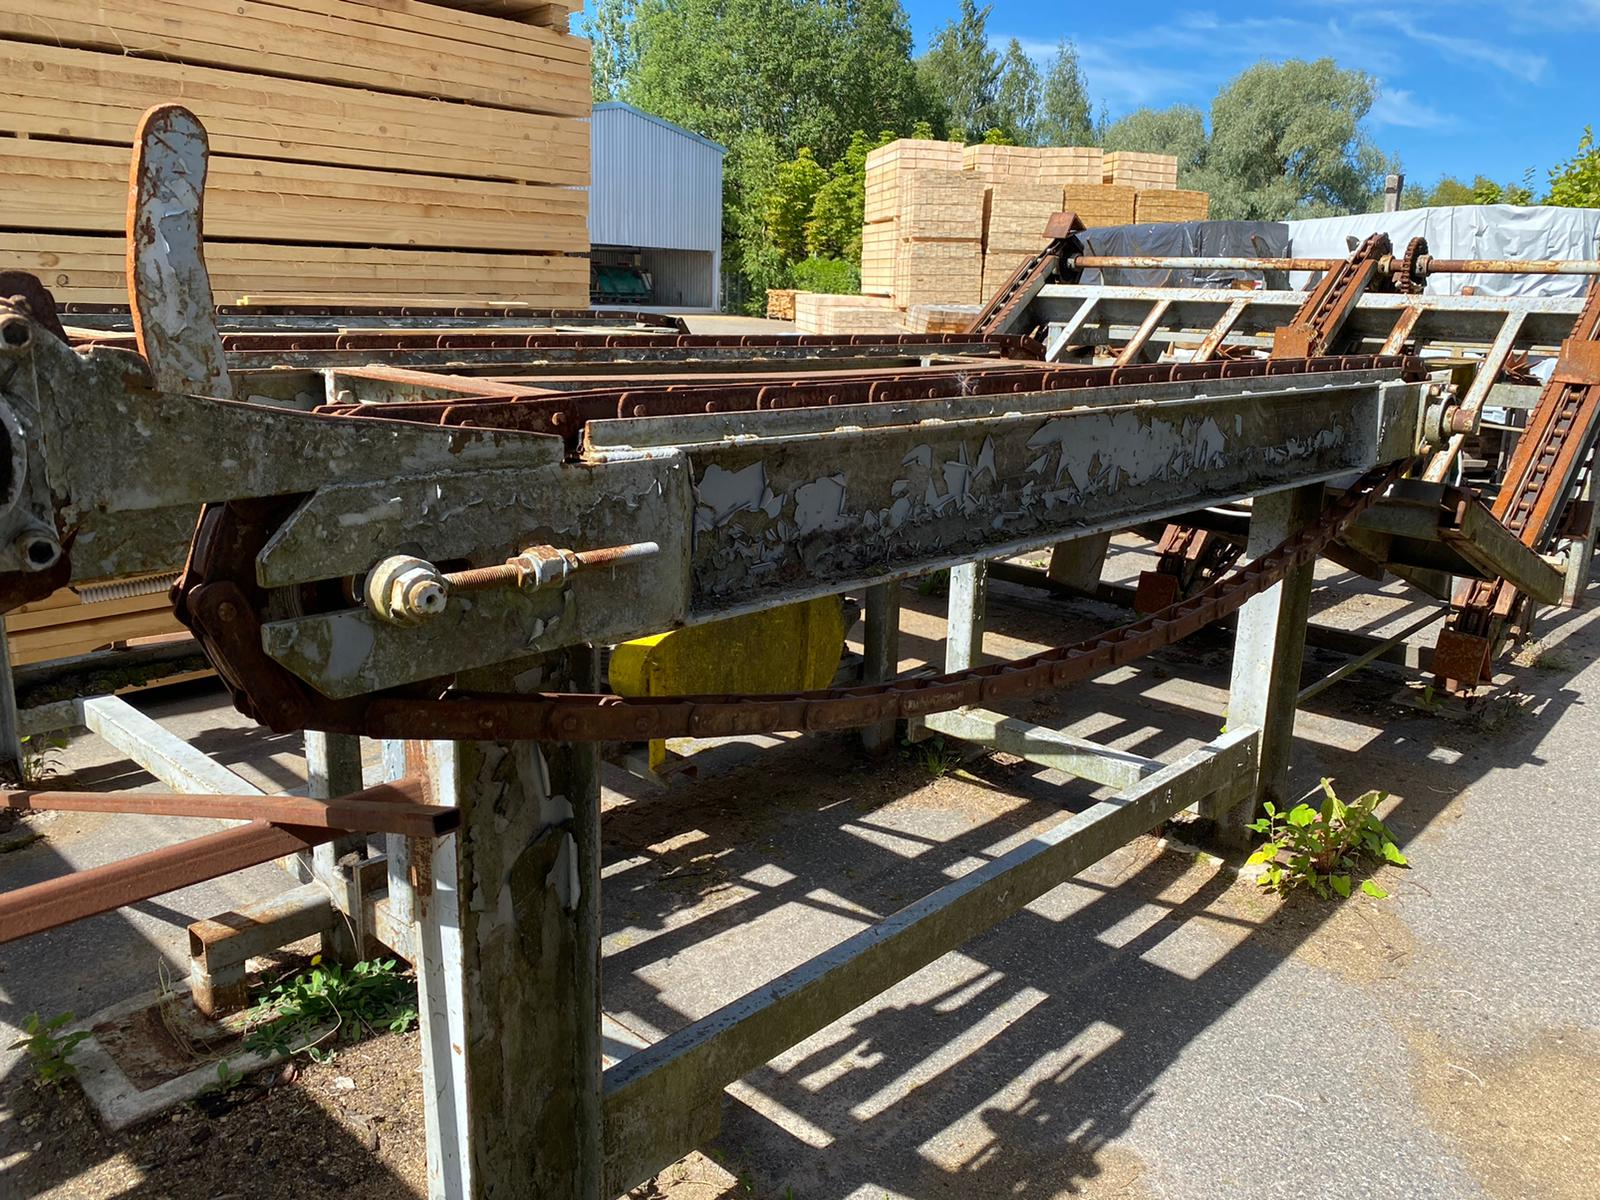 Log feeding table with cross cut saw Vesto - Swedabo